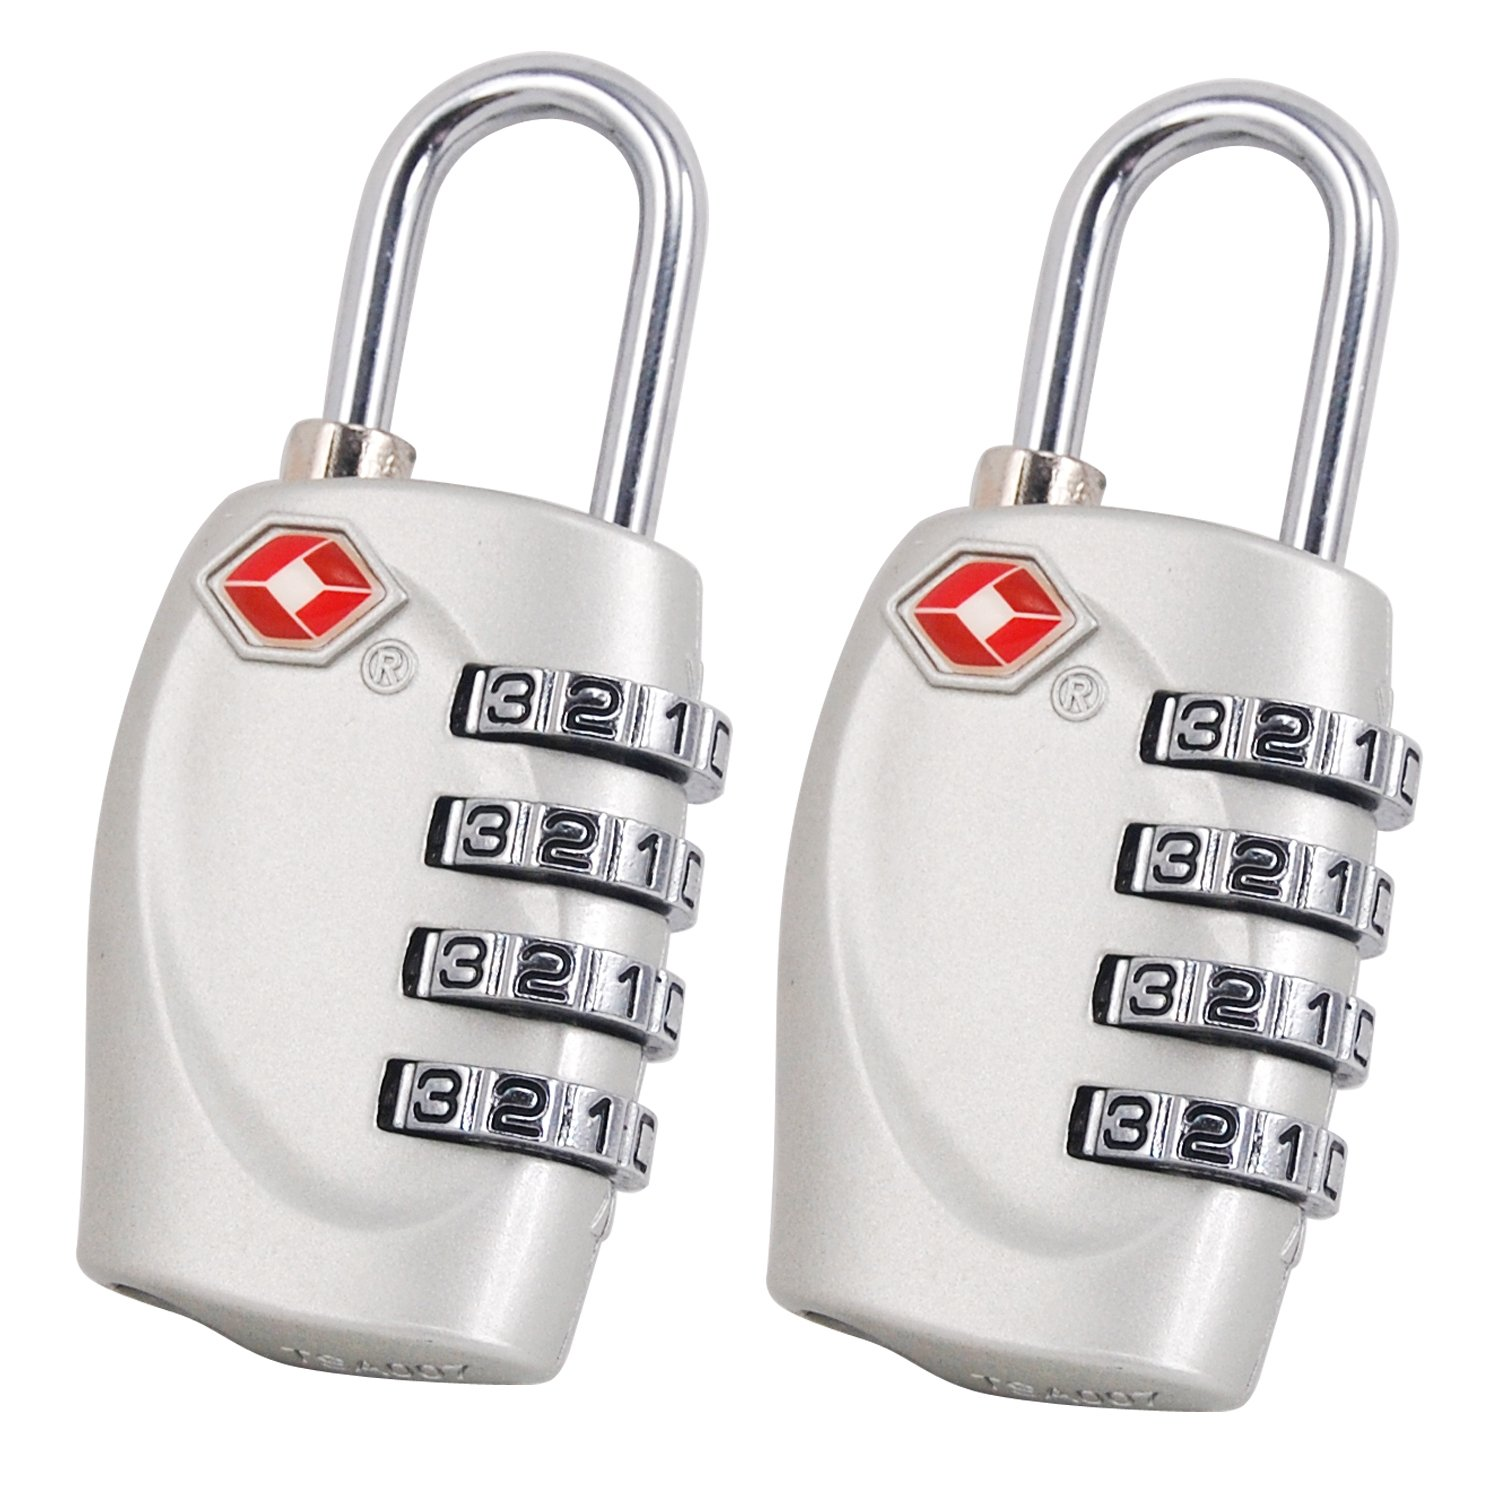 2 X 4 Dial TSA Combination Padlock for Luggage Suitcases and Travel (Silver) TRIXES HH41